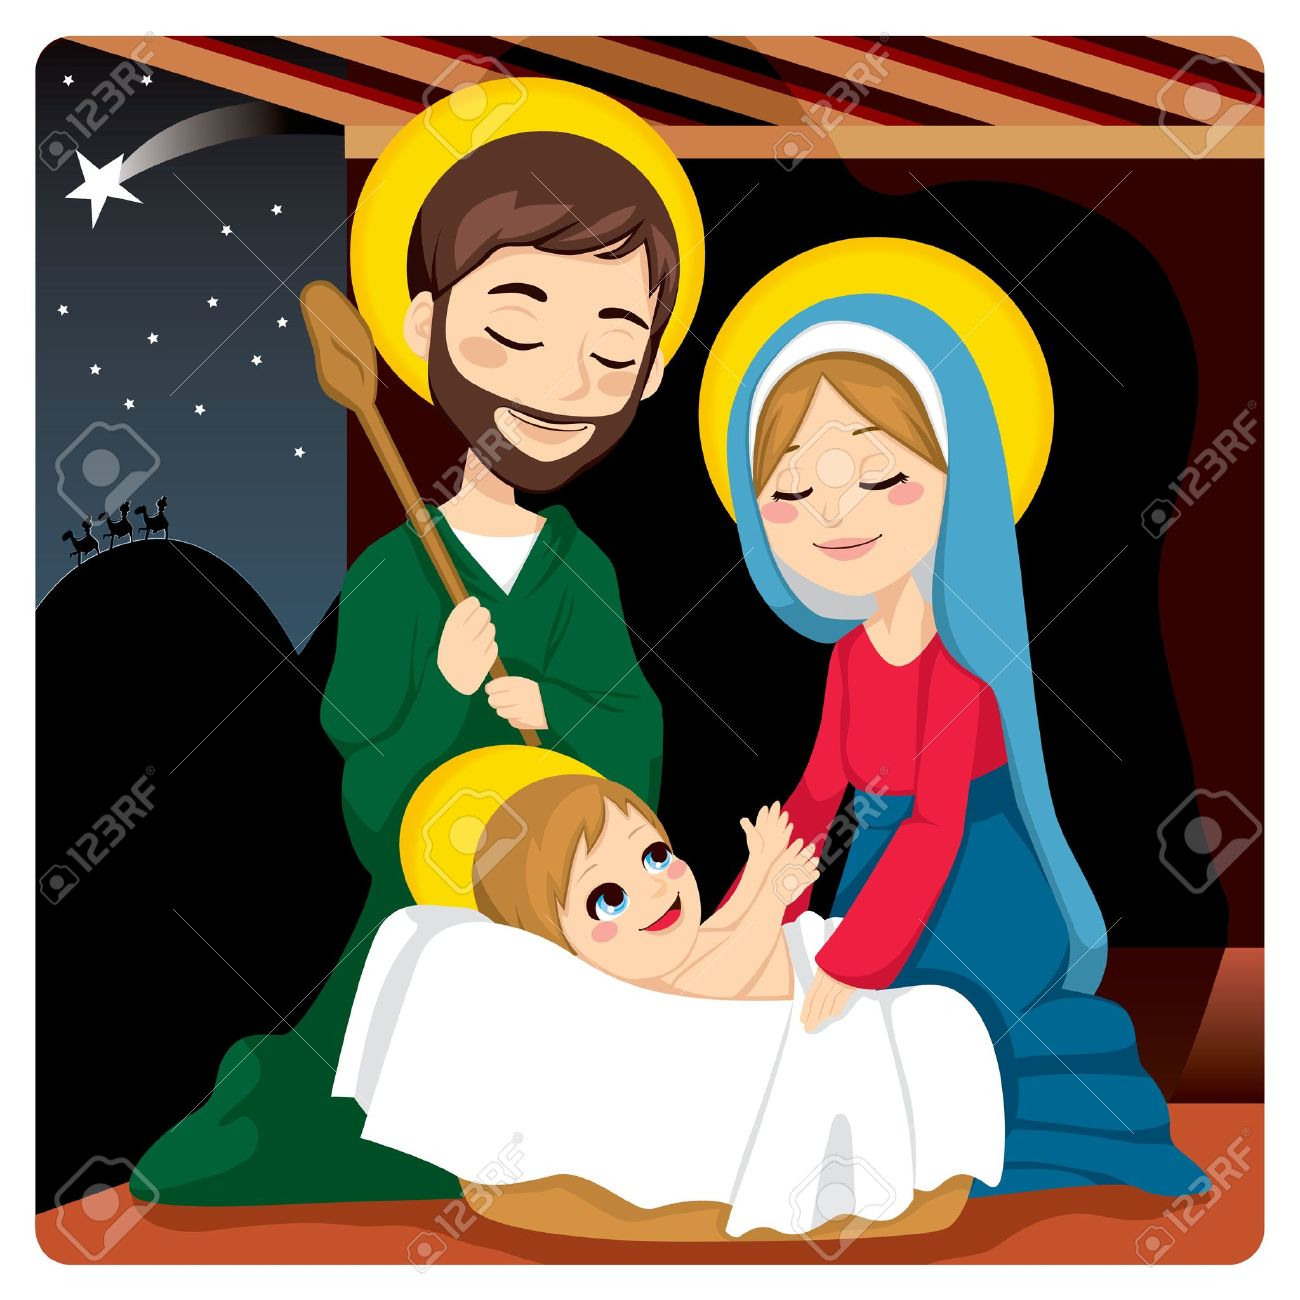 Joseph and Mary joyful with baby Jesus laughing and three wise...